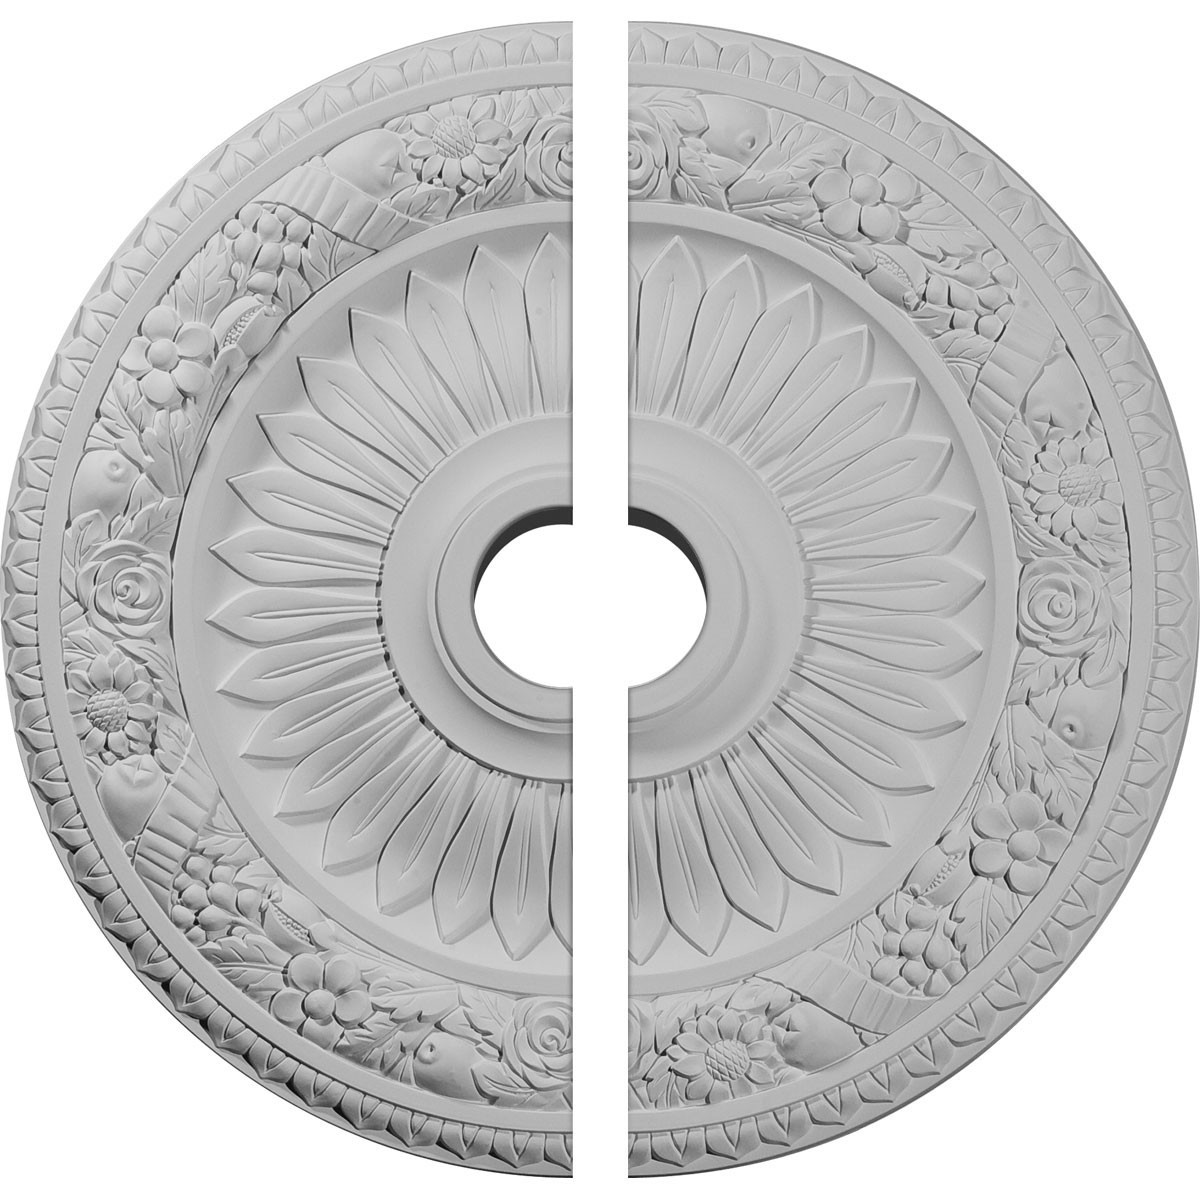 """EM-CM23BE2 - 23 5/8""""OD x 3 5/8""""ID x 1 1/8""""P Bellona Ceiling Medallion, Two Piece (Fits Canopies up to 3 5/8"""")"""